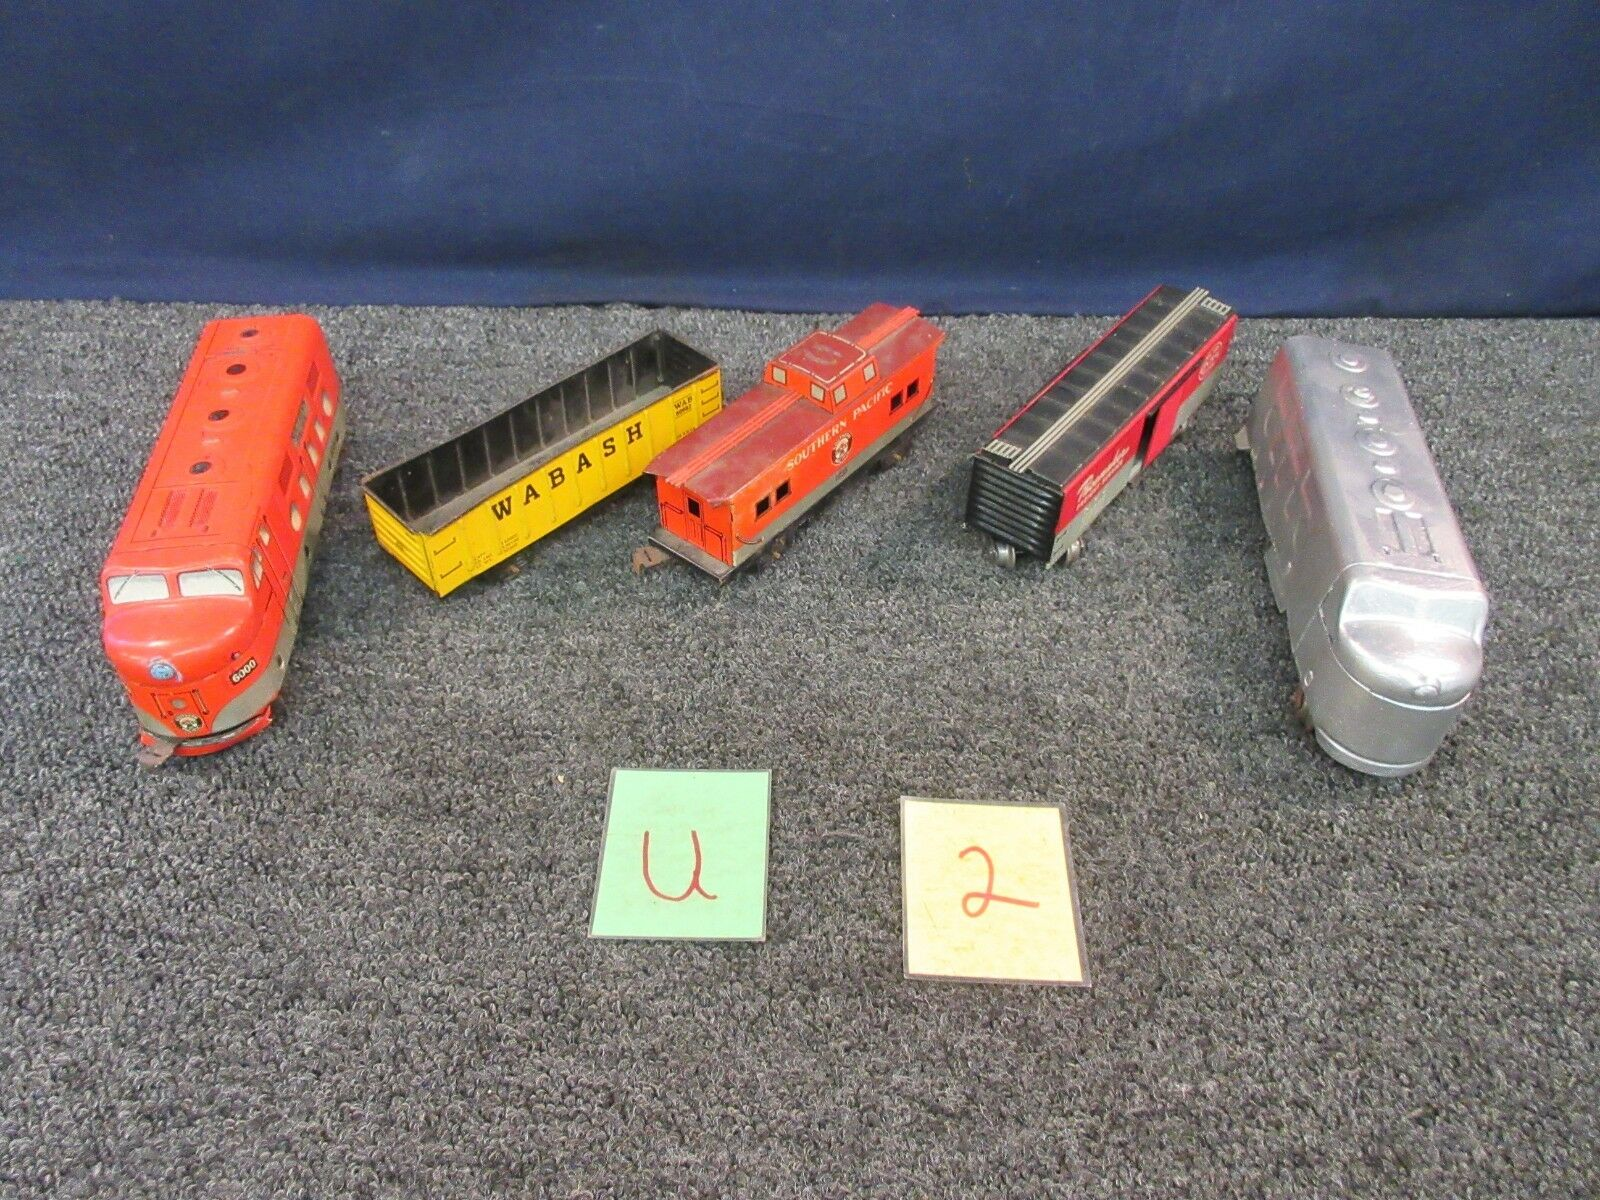 5 MODEL TRAIN CARS SOUTHERN PACIFIC WABASH PACEMAKER CABOOSE PASSENGER O SCALE